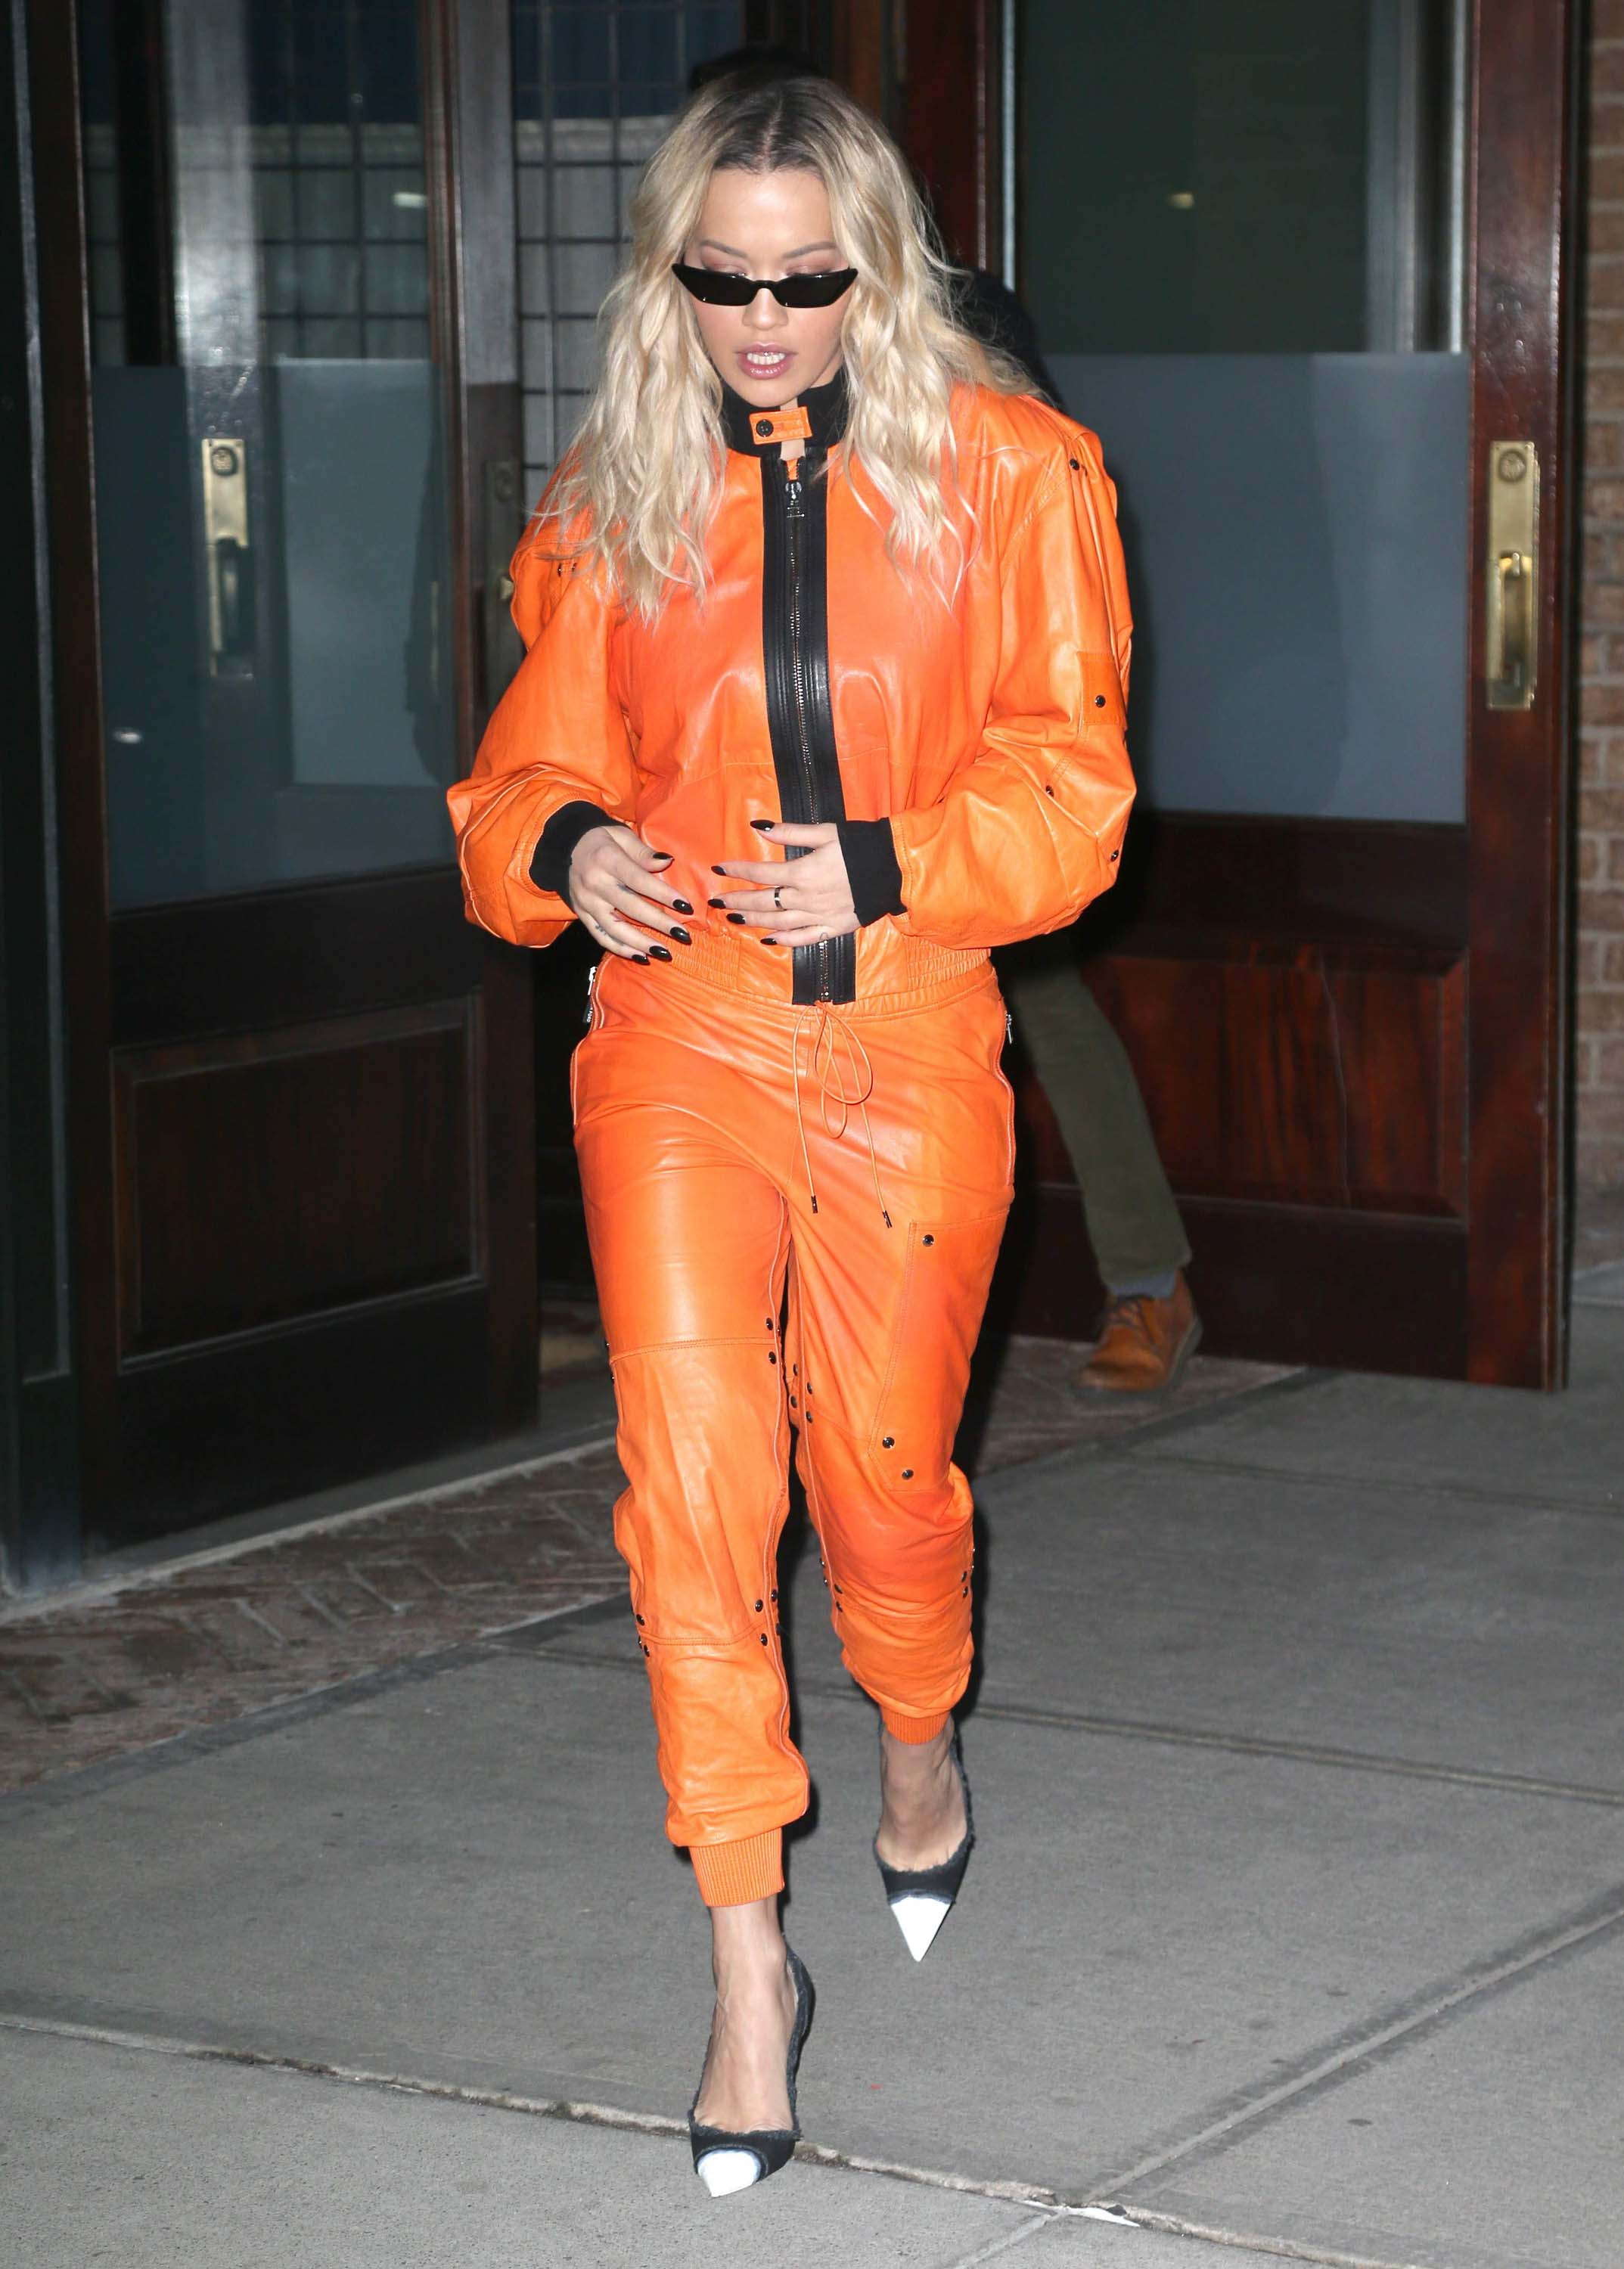 Rita Ora heads to Late Night with Seth Meyers